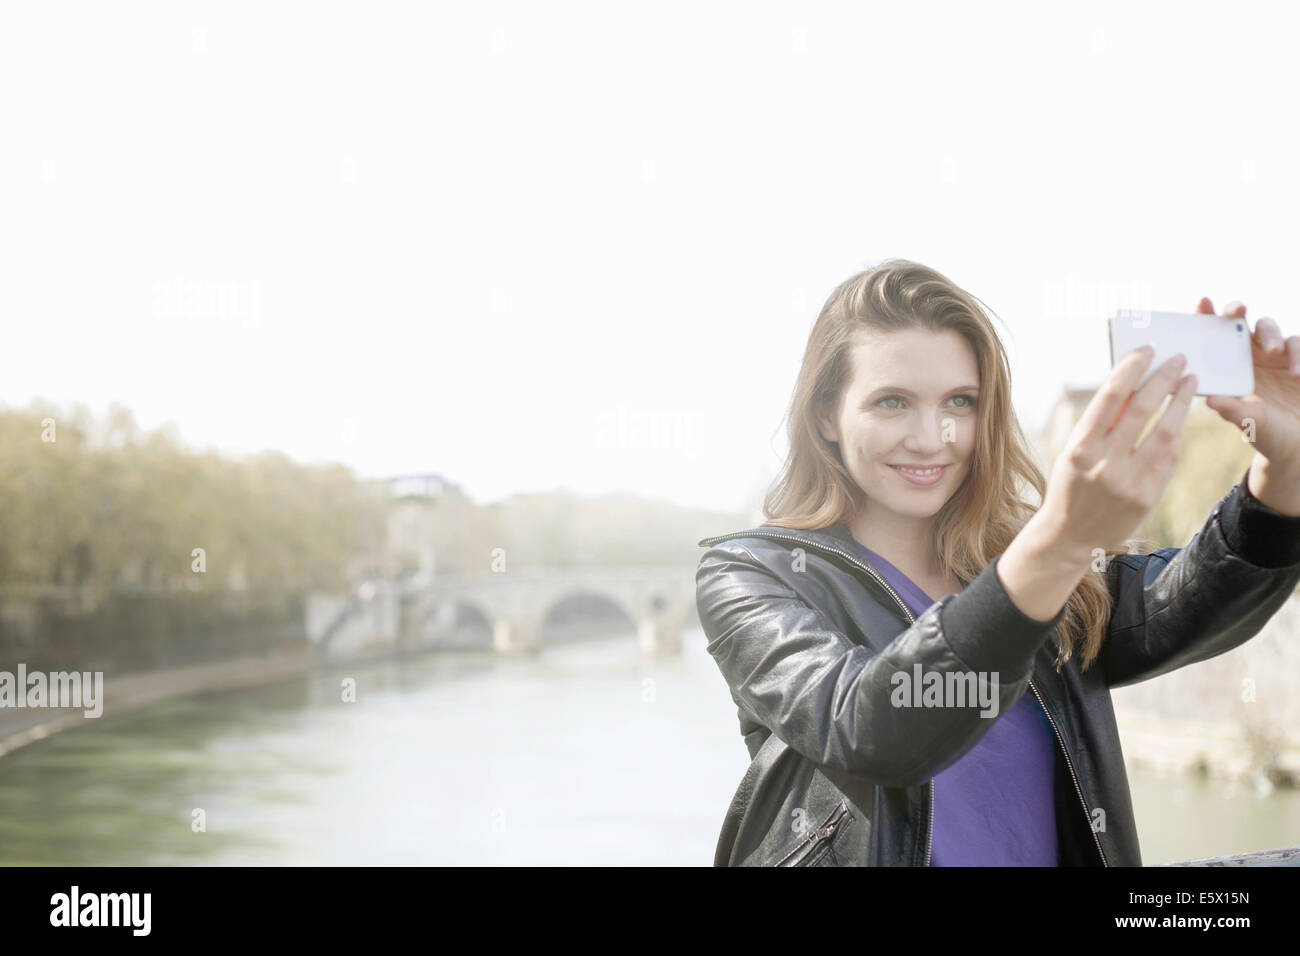 Young woman taking a picture of herself, Isola Tiberina, Rome, Italy - Stock Image